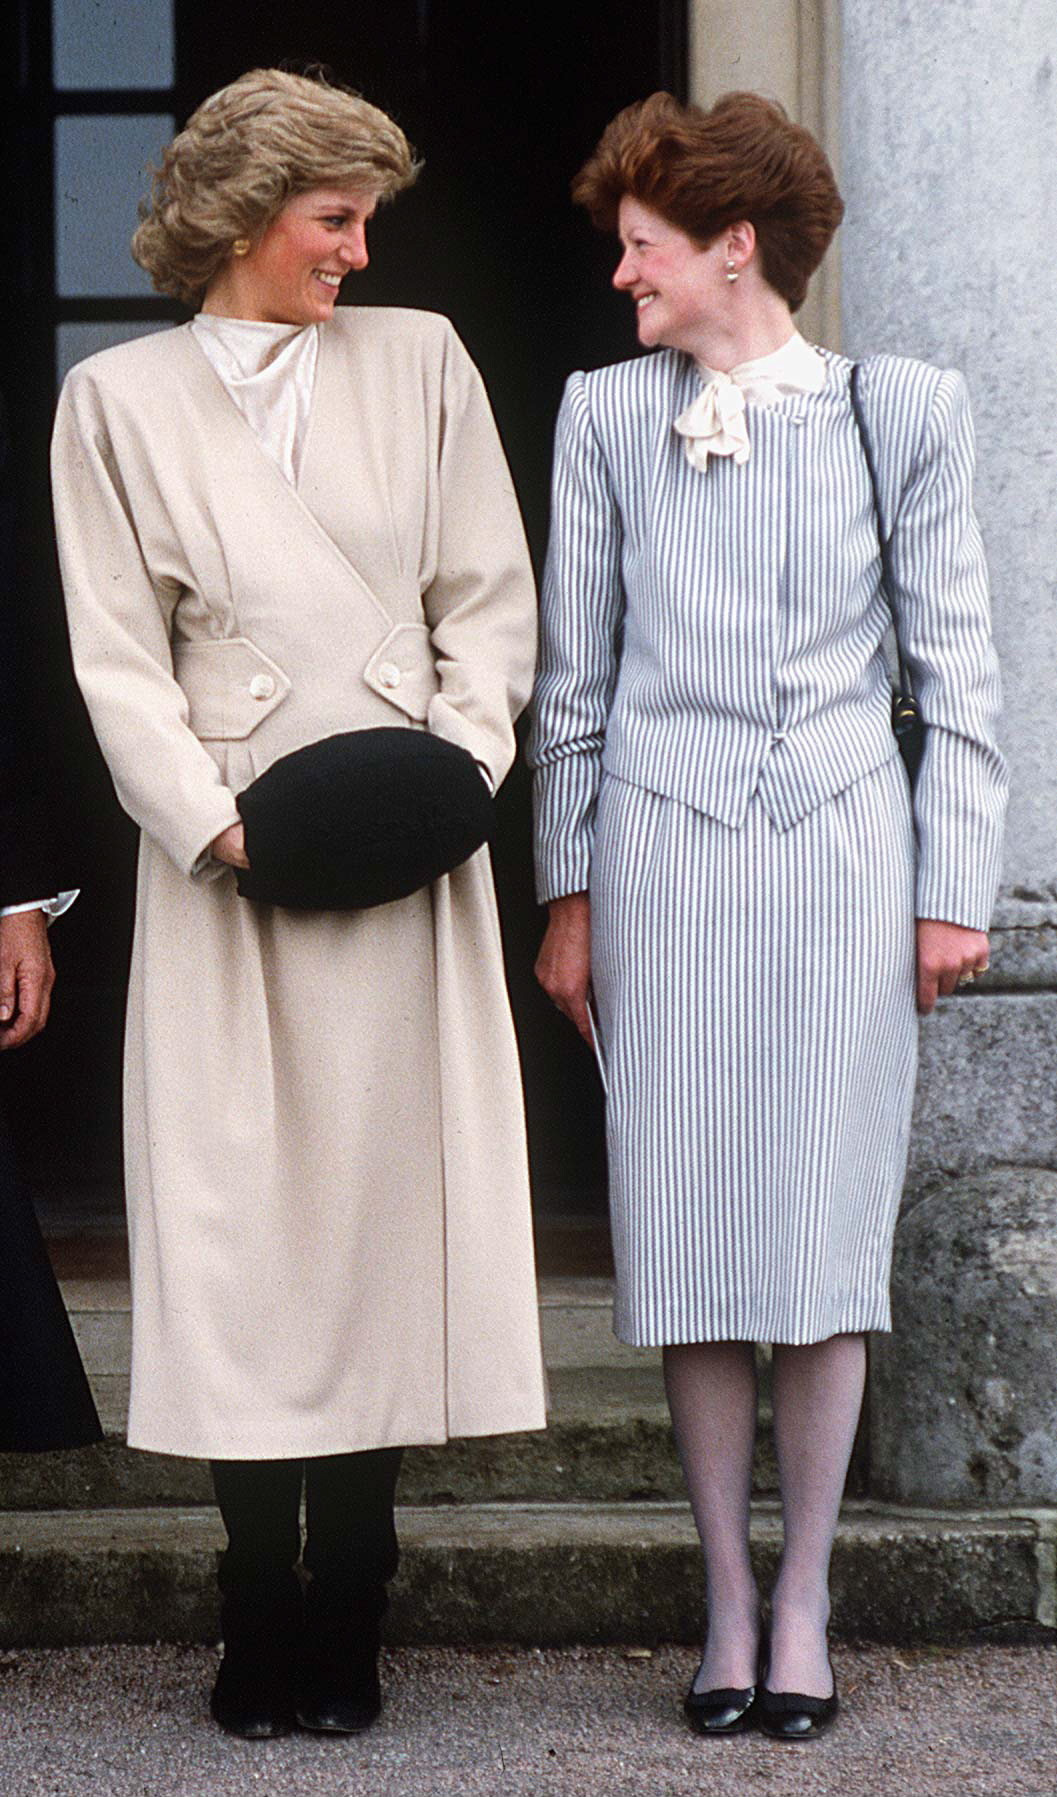 WEST HEATH, UNITED KINGDOM - NOVEMBER 12:  Princess Diana With Her Older Sister Lady Sarah Mccorquodale On A Visit To Their Old School, West Heath, In Kent.  (Photo by Tim Graham/Getty Images)